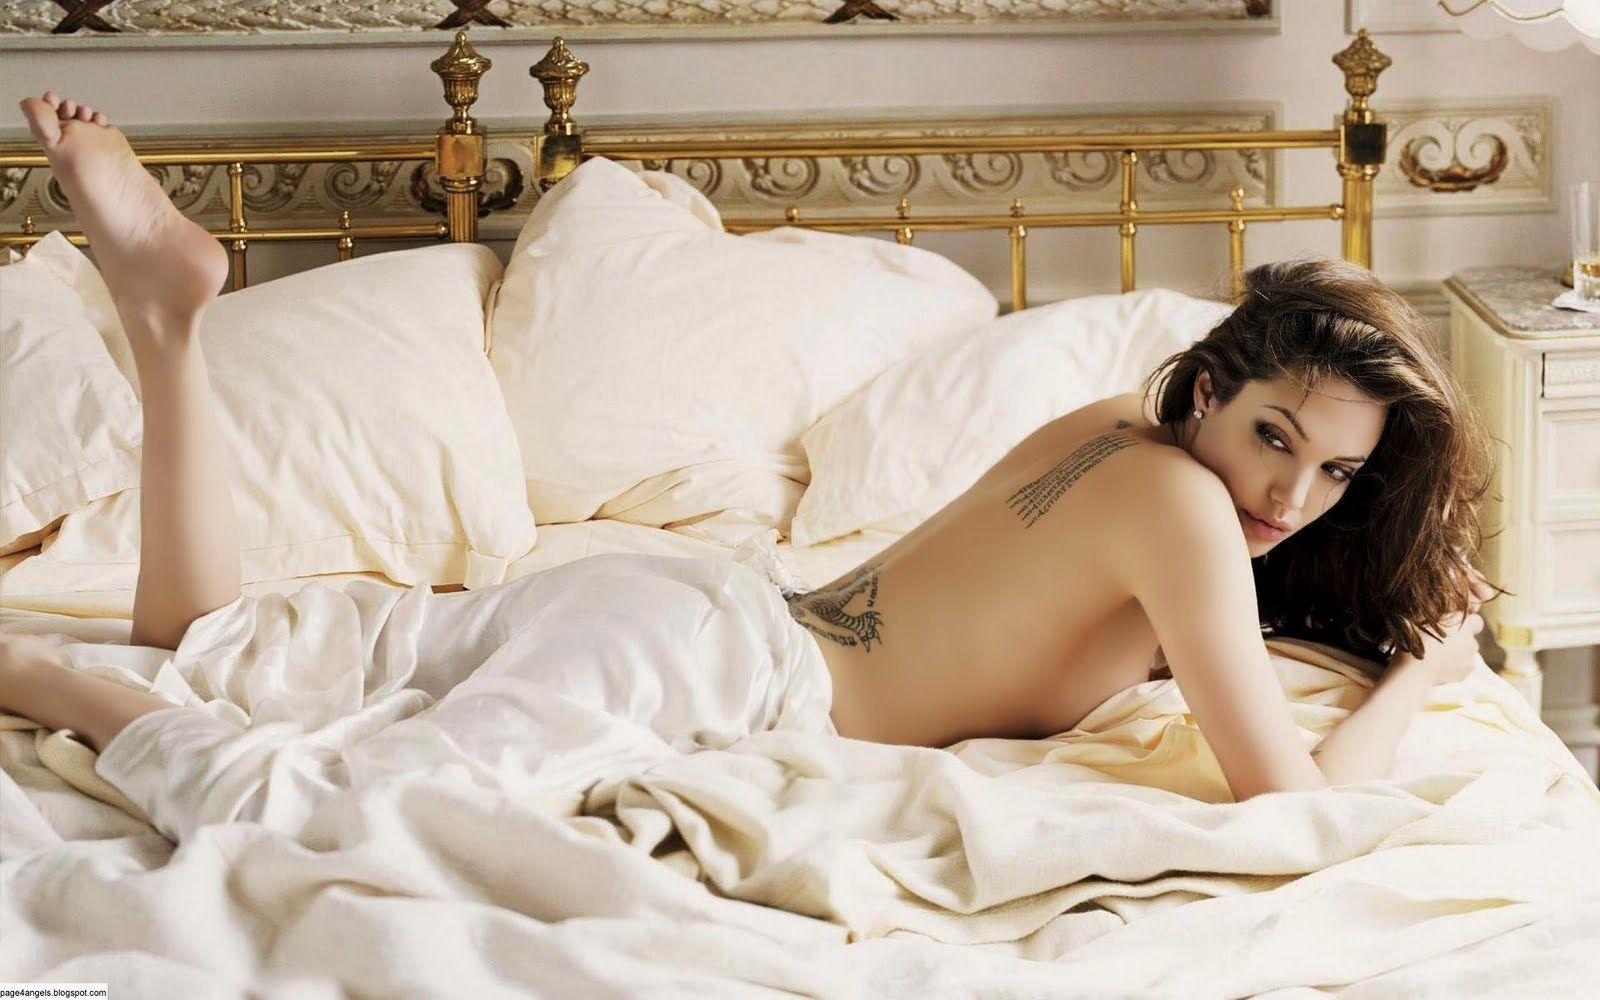 Angelina Jolie Naked Pics pin on purplewallpapers